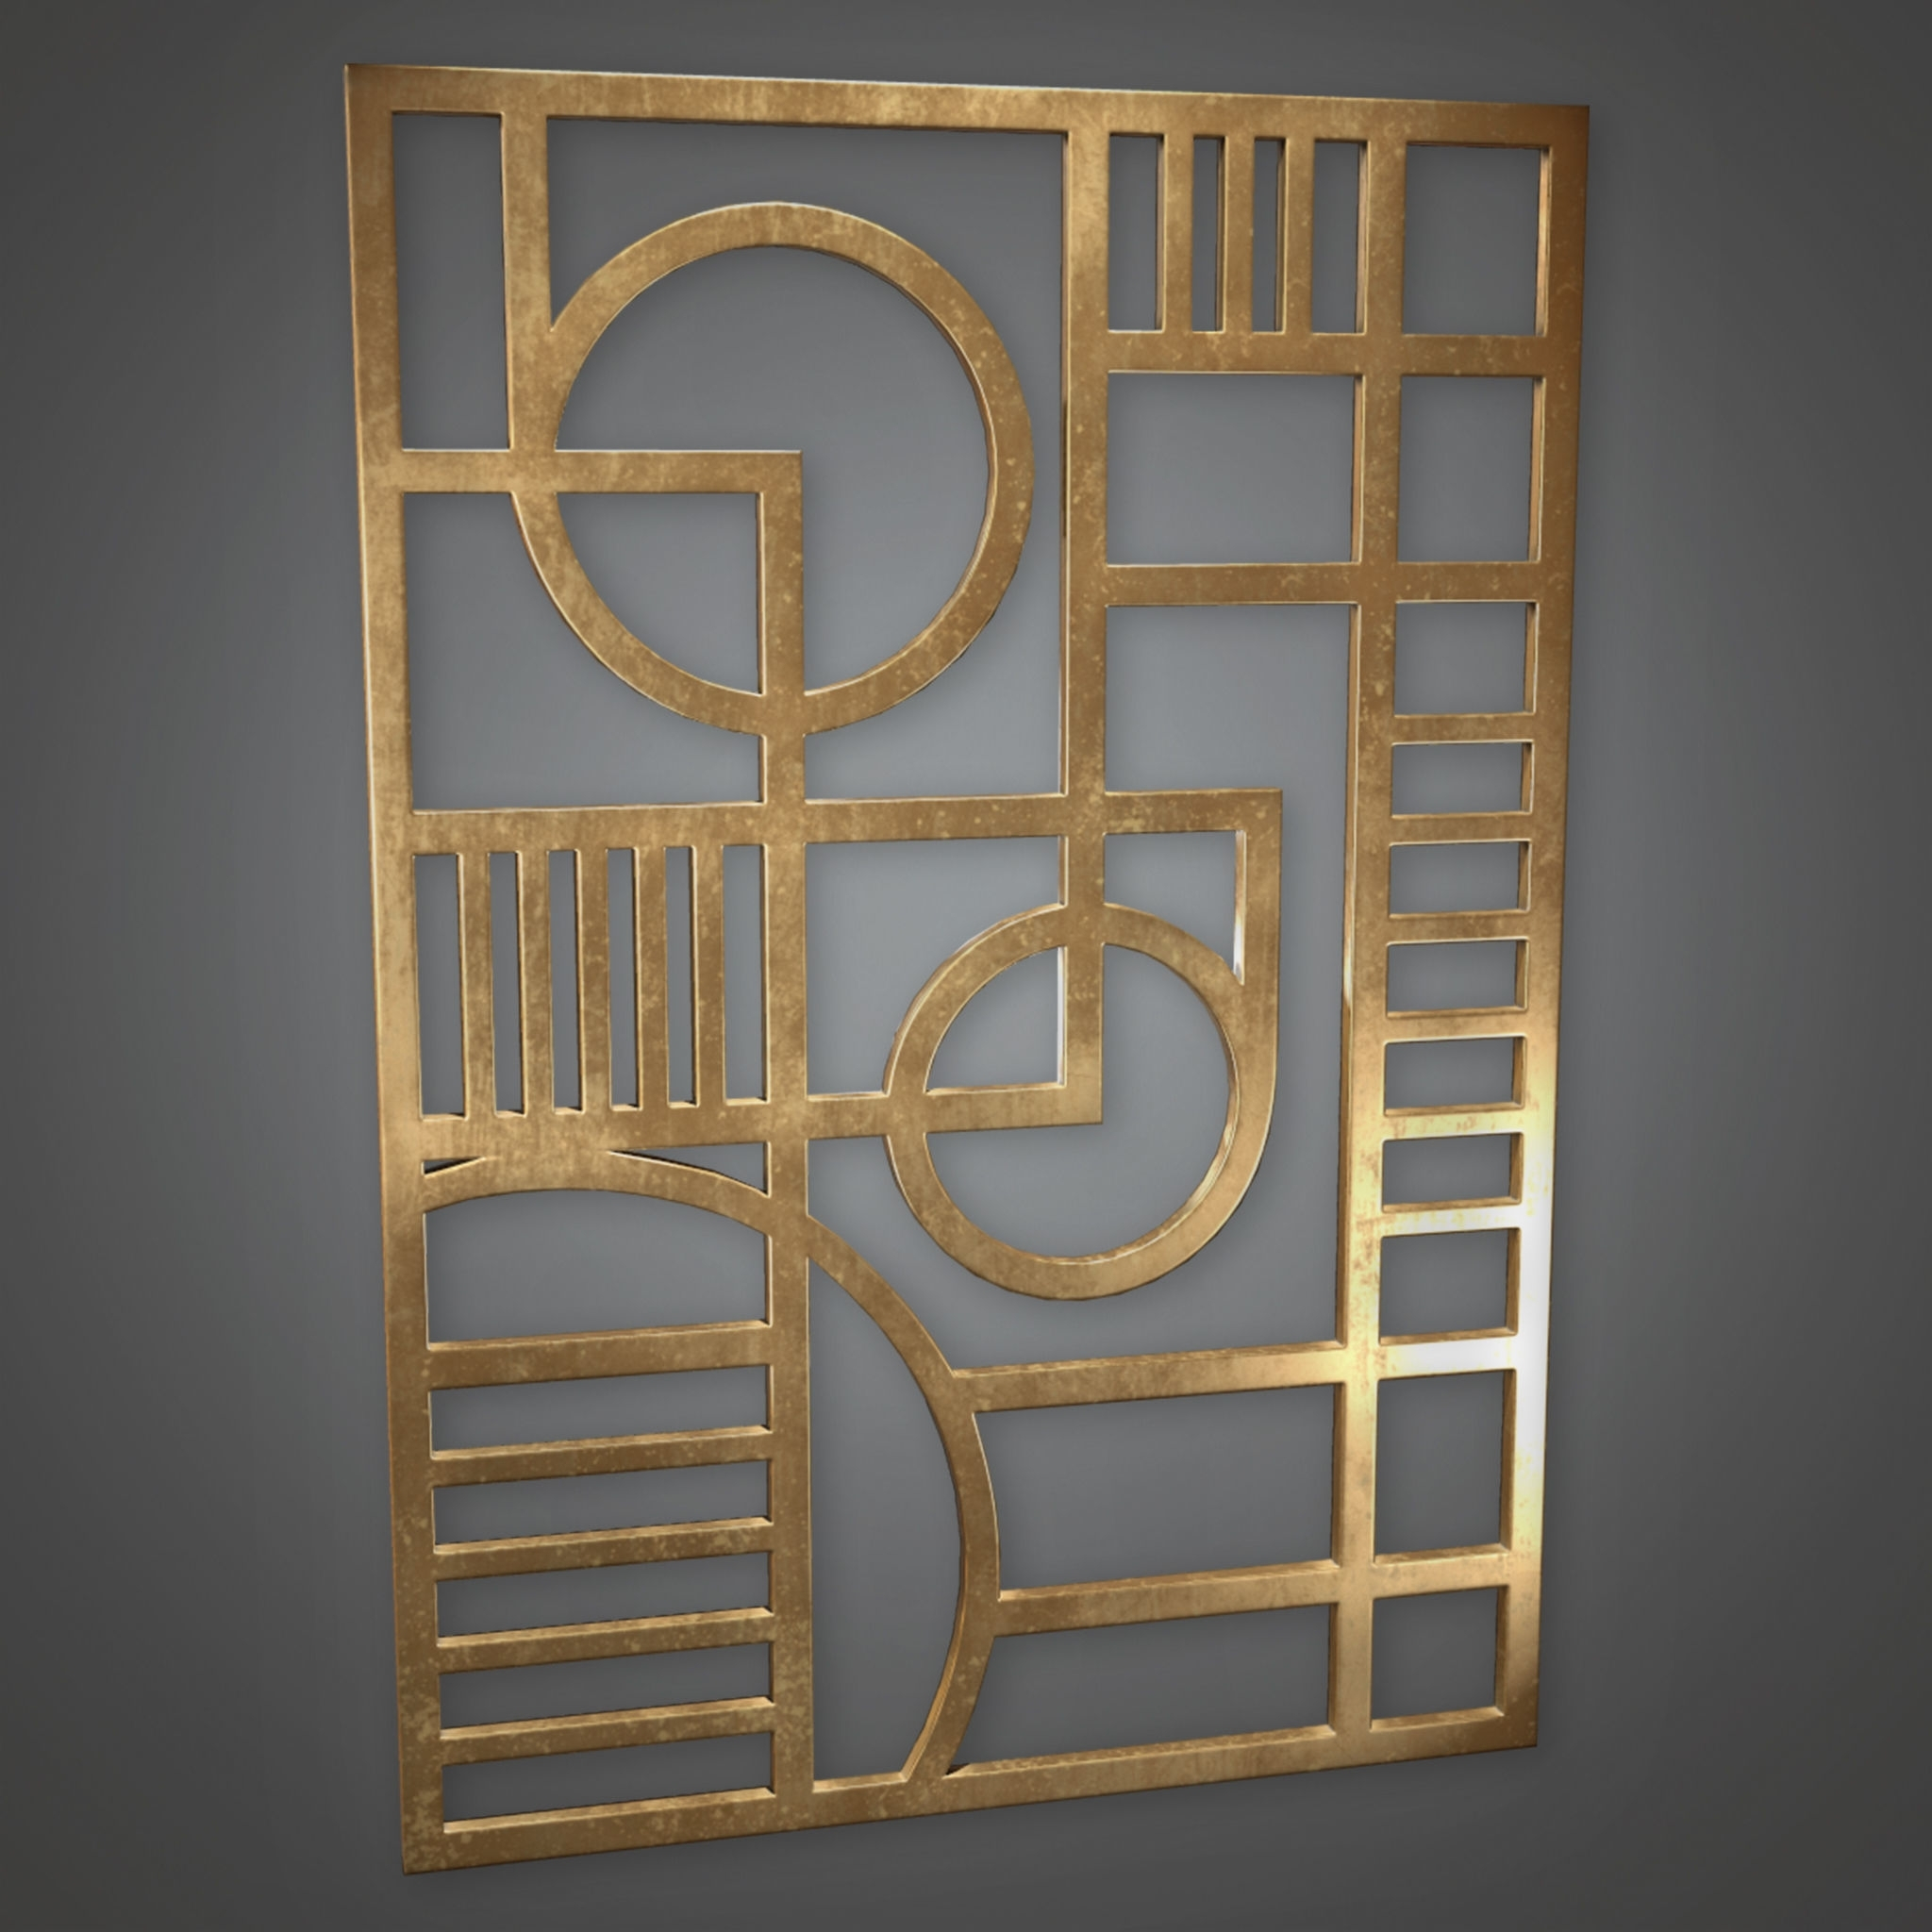 3D Model Wall Art Art Deco – Pbr Game Ready | Cgtrader Regarding Most Recent Art Deco Wall Art (Gallery 15 of 20)